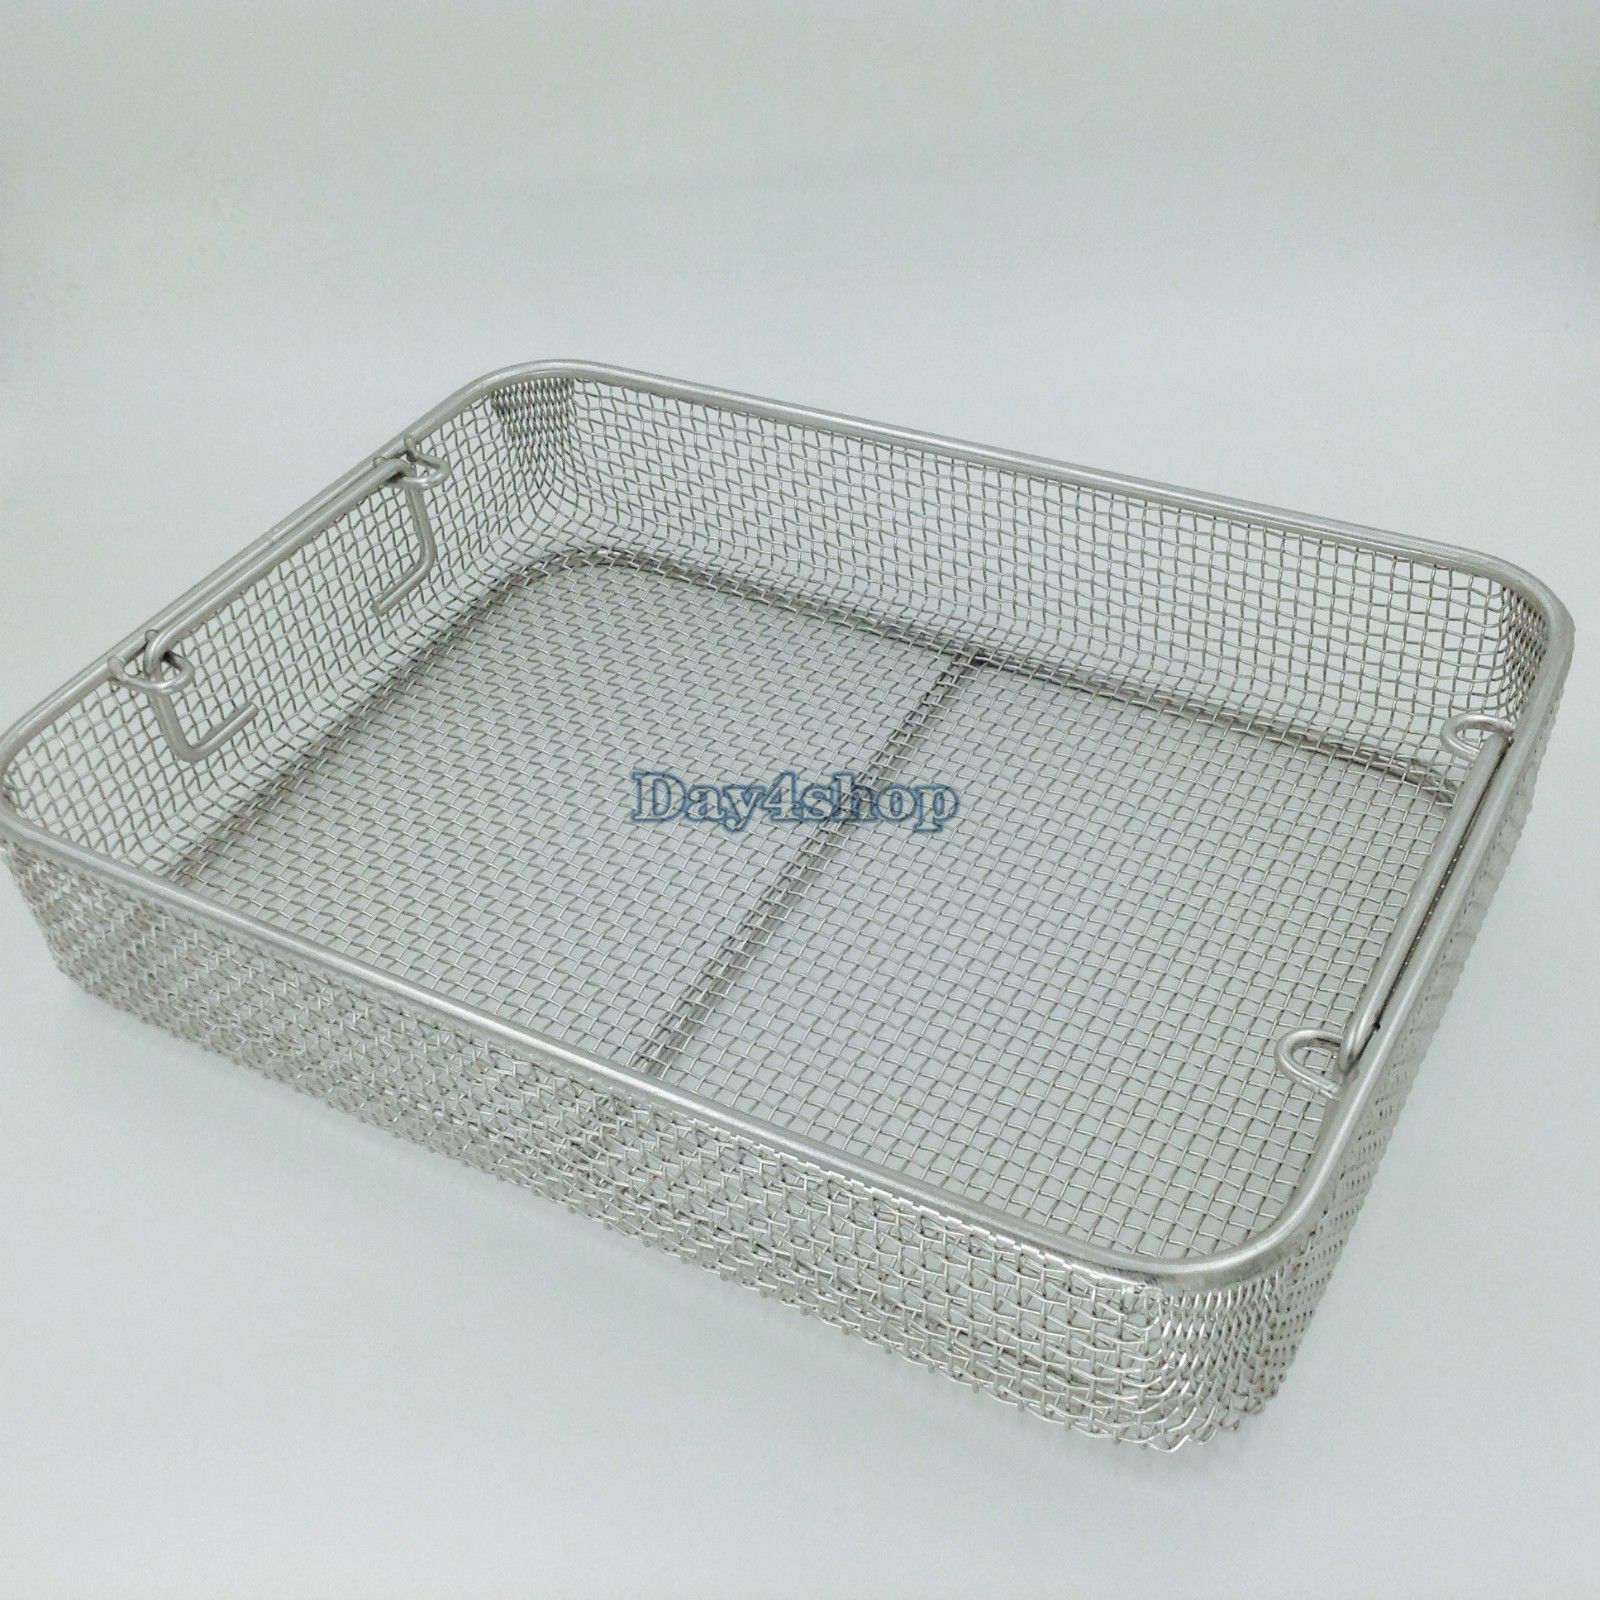 Best New Stainless steel sterilization tray case box surgical instrument